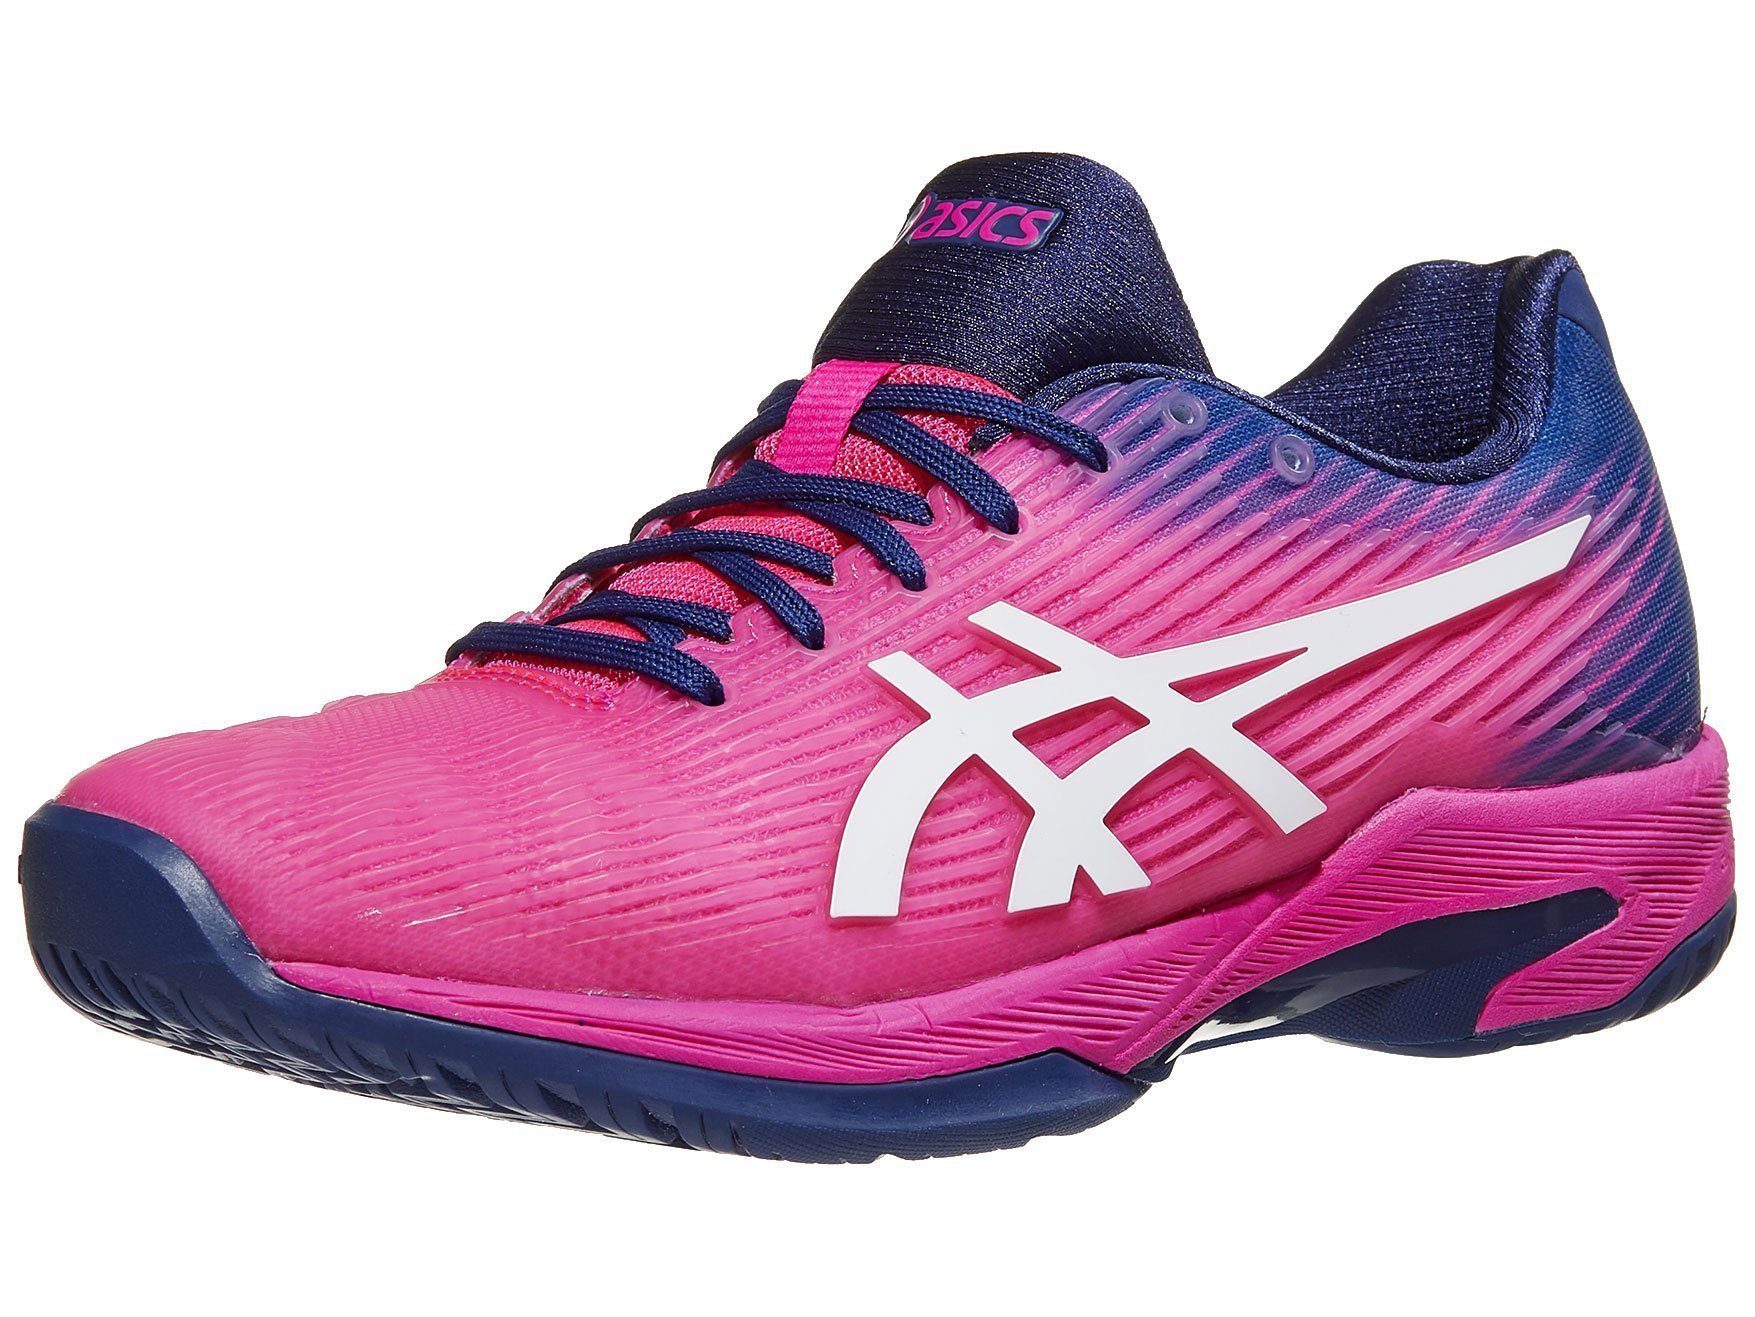 ASICS Womens Solution Speed FF Tennis Shoe, Pink Glo/White, Size 5.5